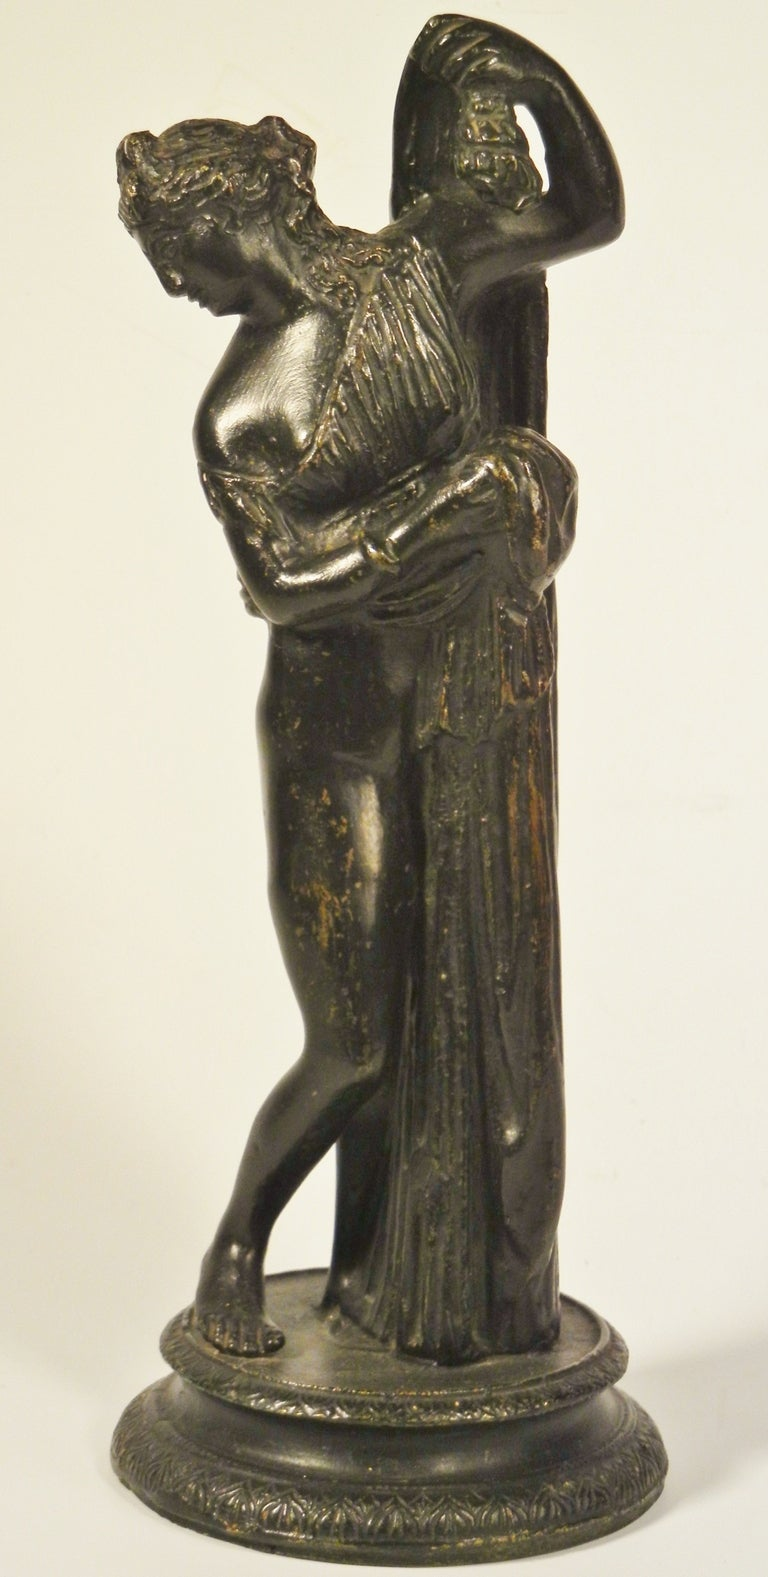 This graceful tabletop bronze figure with its black patina depicts the